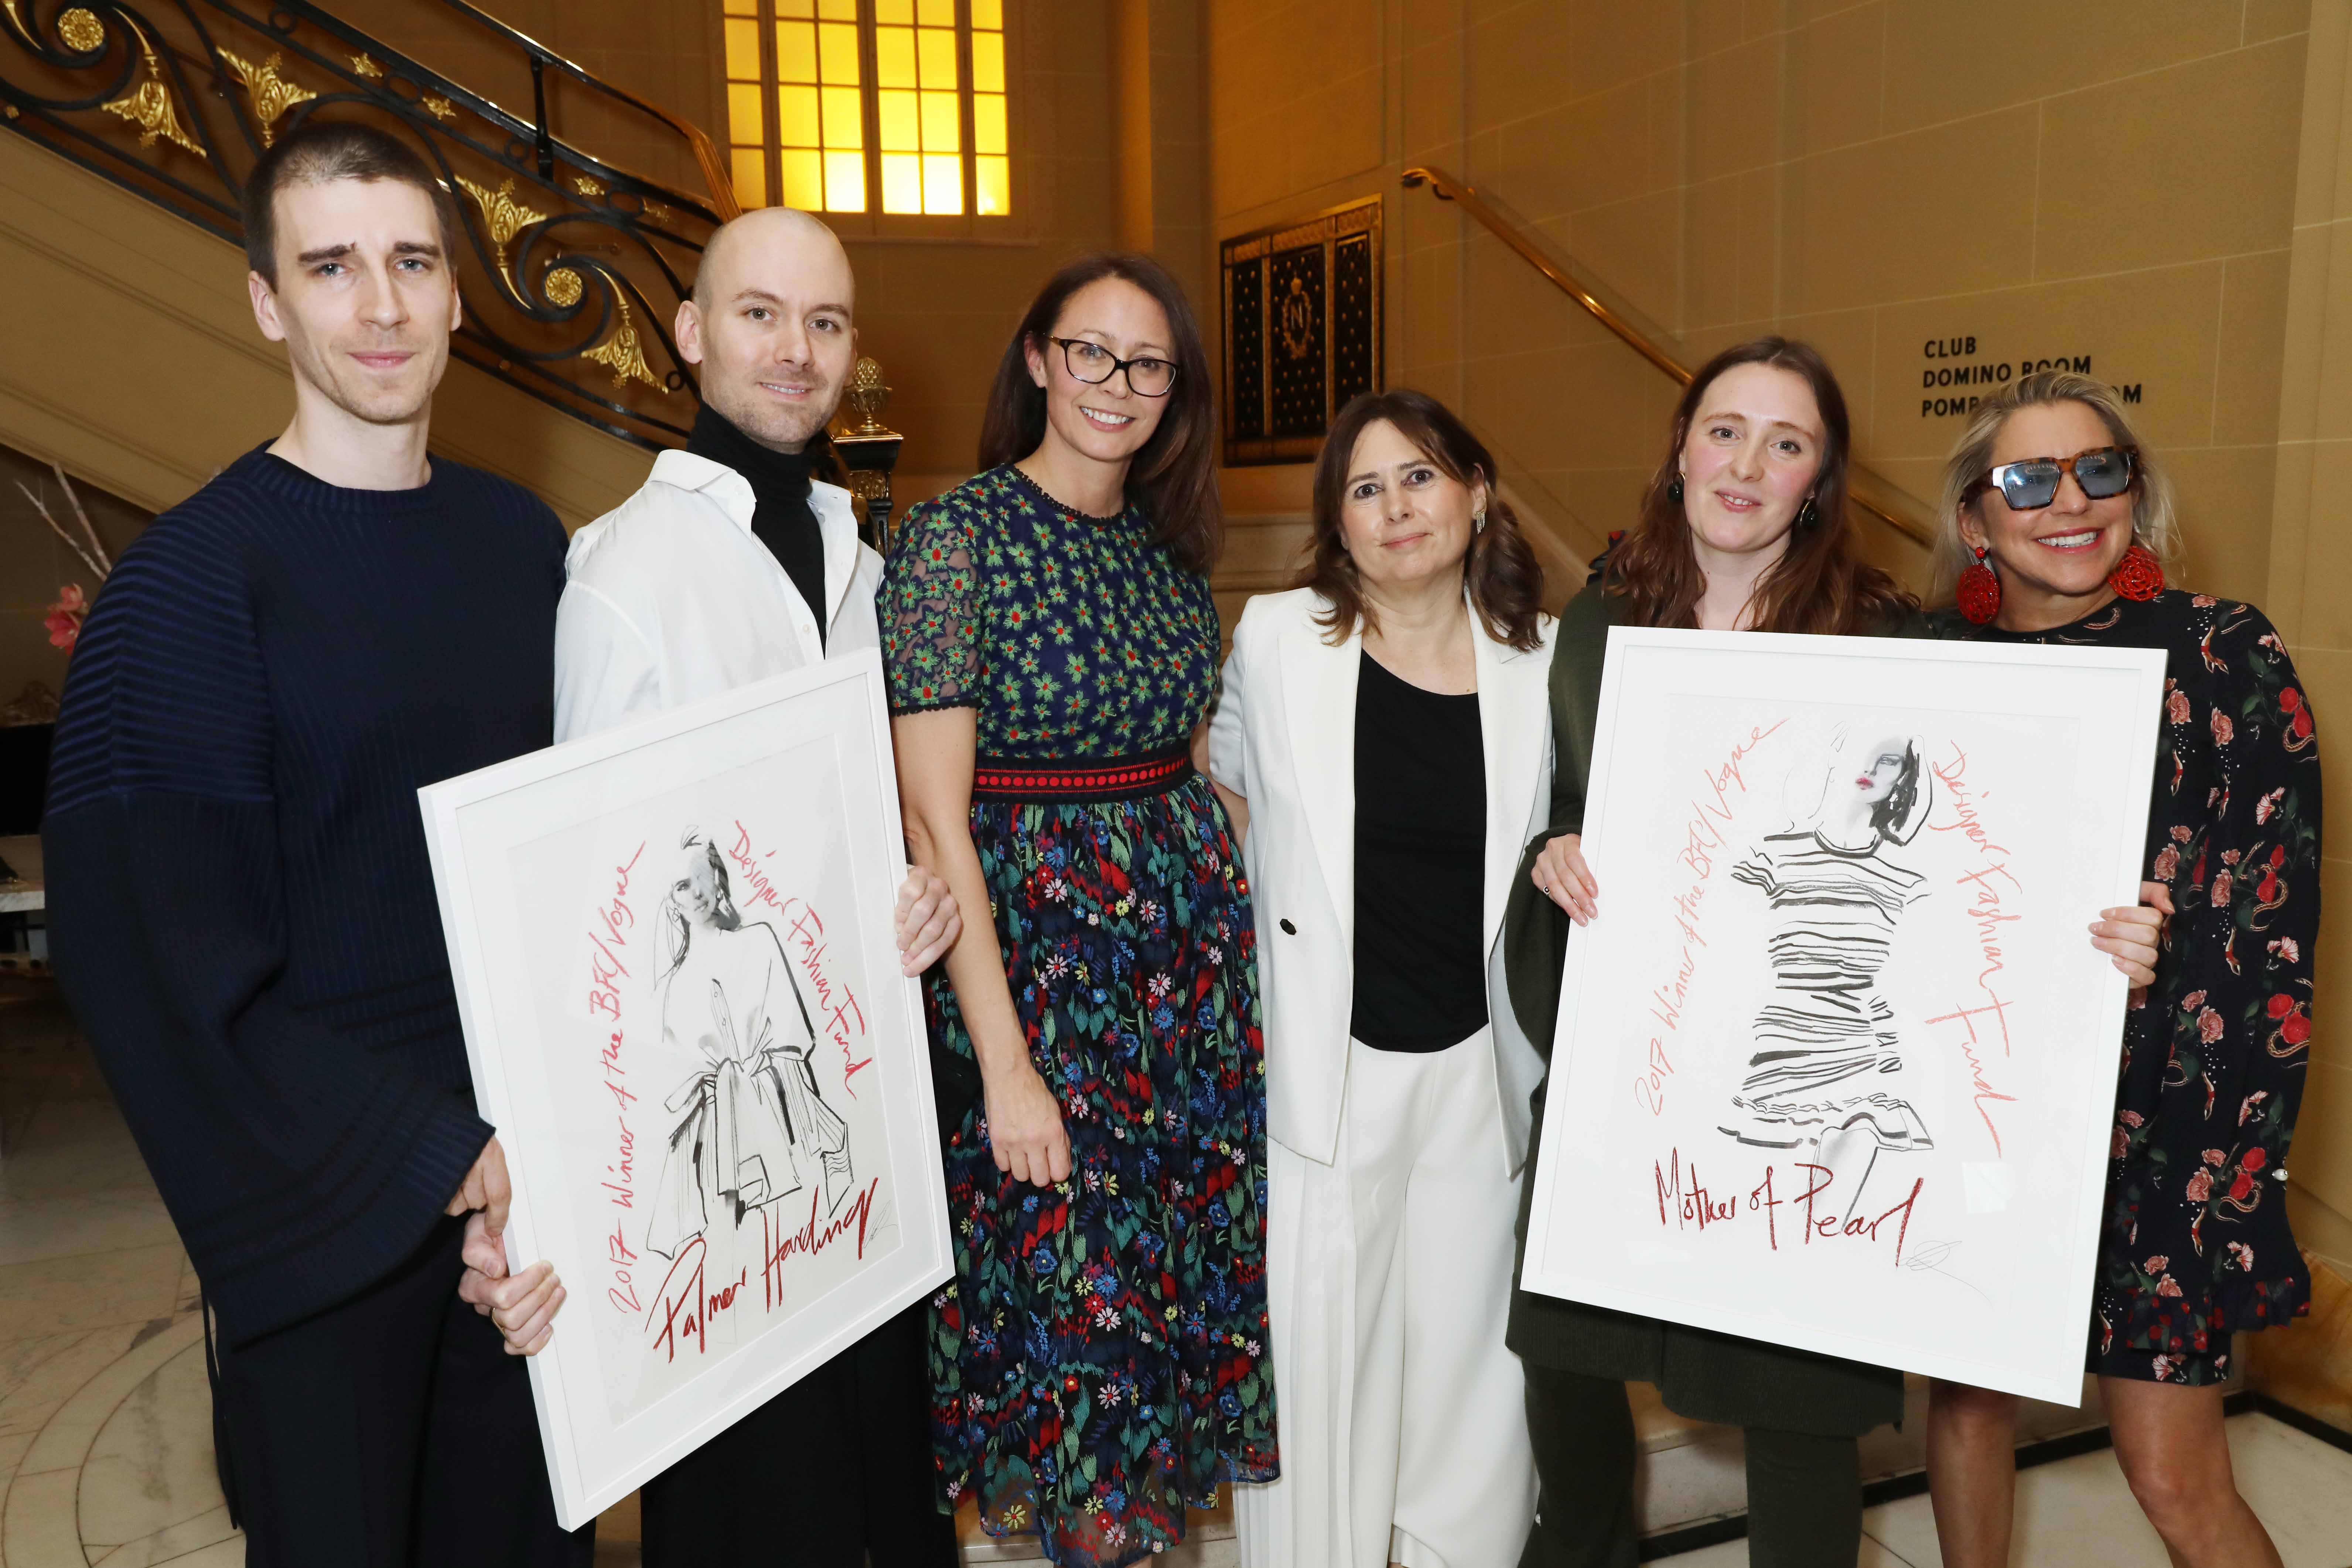 Matthew Harding and Levi Palmer of Palmer/Harding, the BFC's Caroline Rush, British Vogue's Alexandra Shulman and Amy Powney and Maia Norman of Mother of Pearl